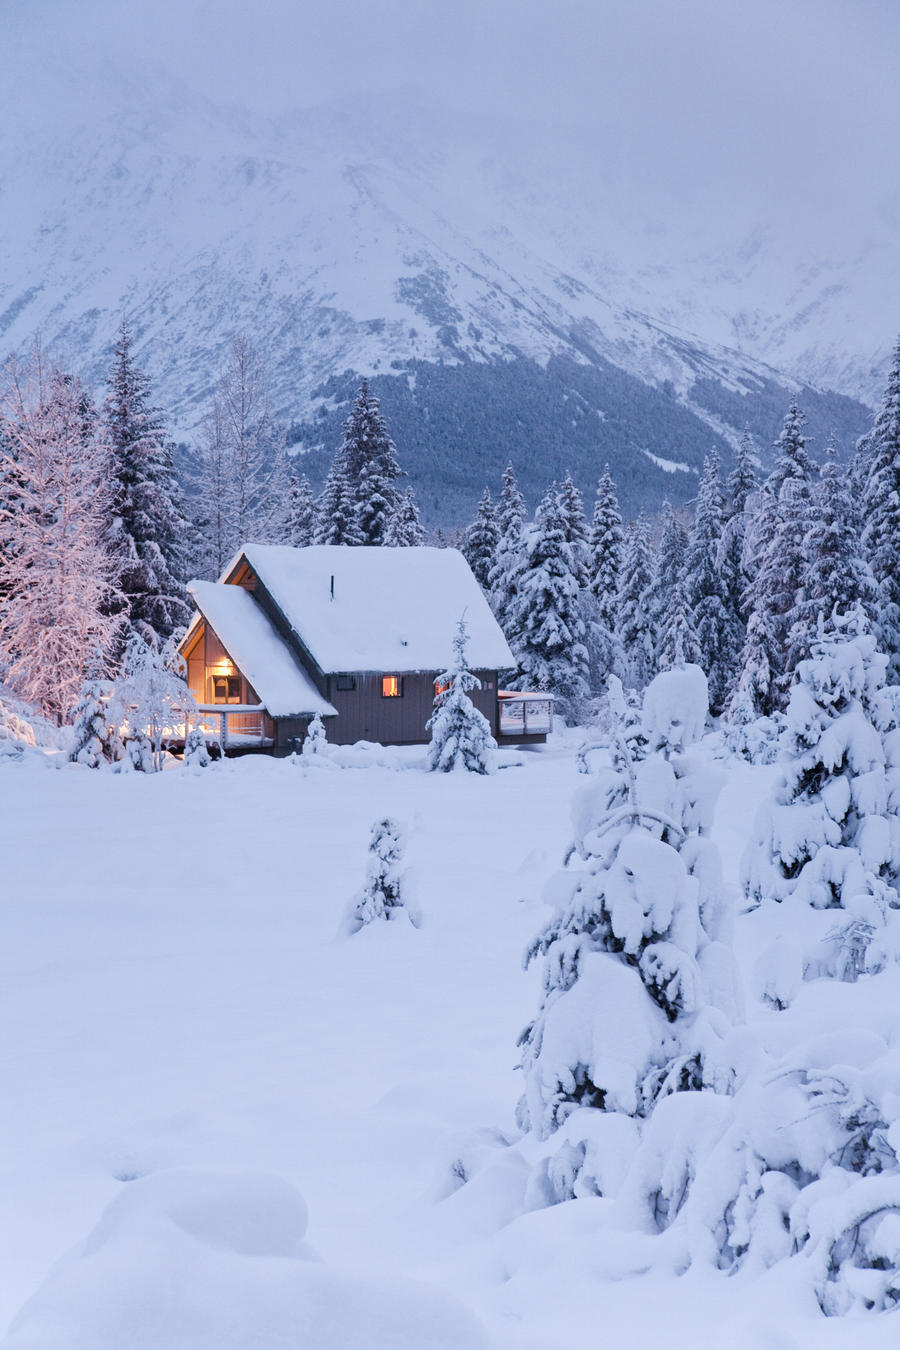 Snowcovered Home In A Wintry Meadow At Dawn With Inside Lights On, Girdwood, Southcentral Alaska  Print